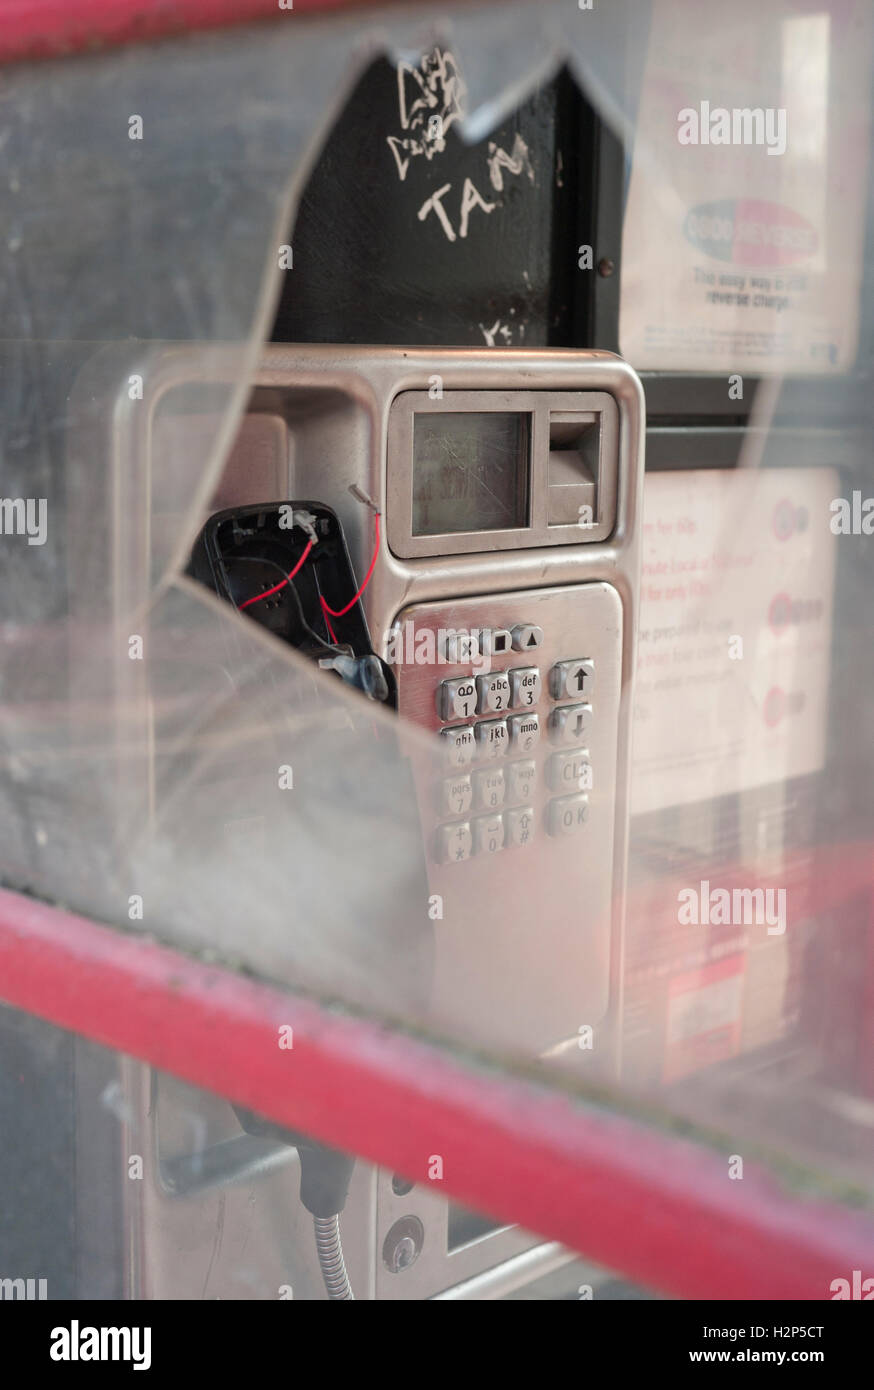 Vandalized telephone box. Stock Photo